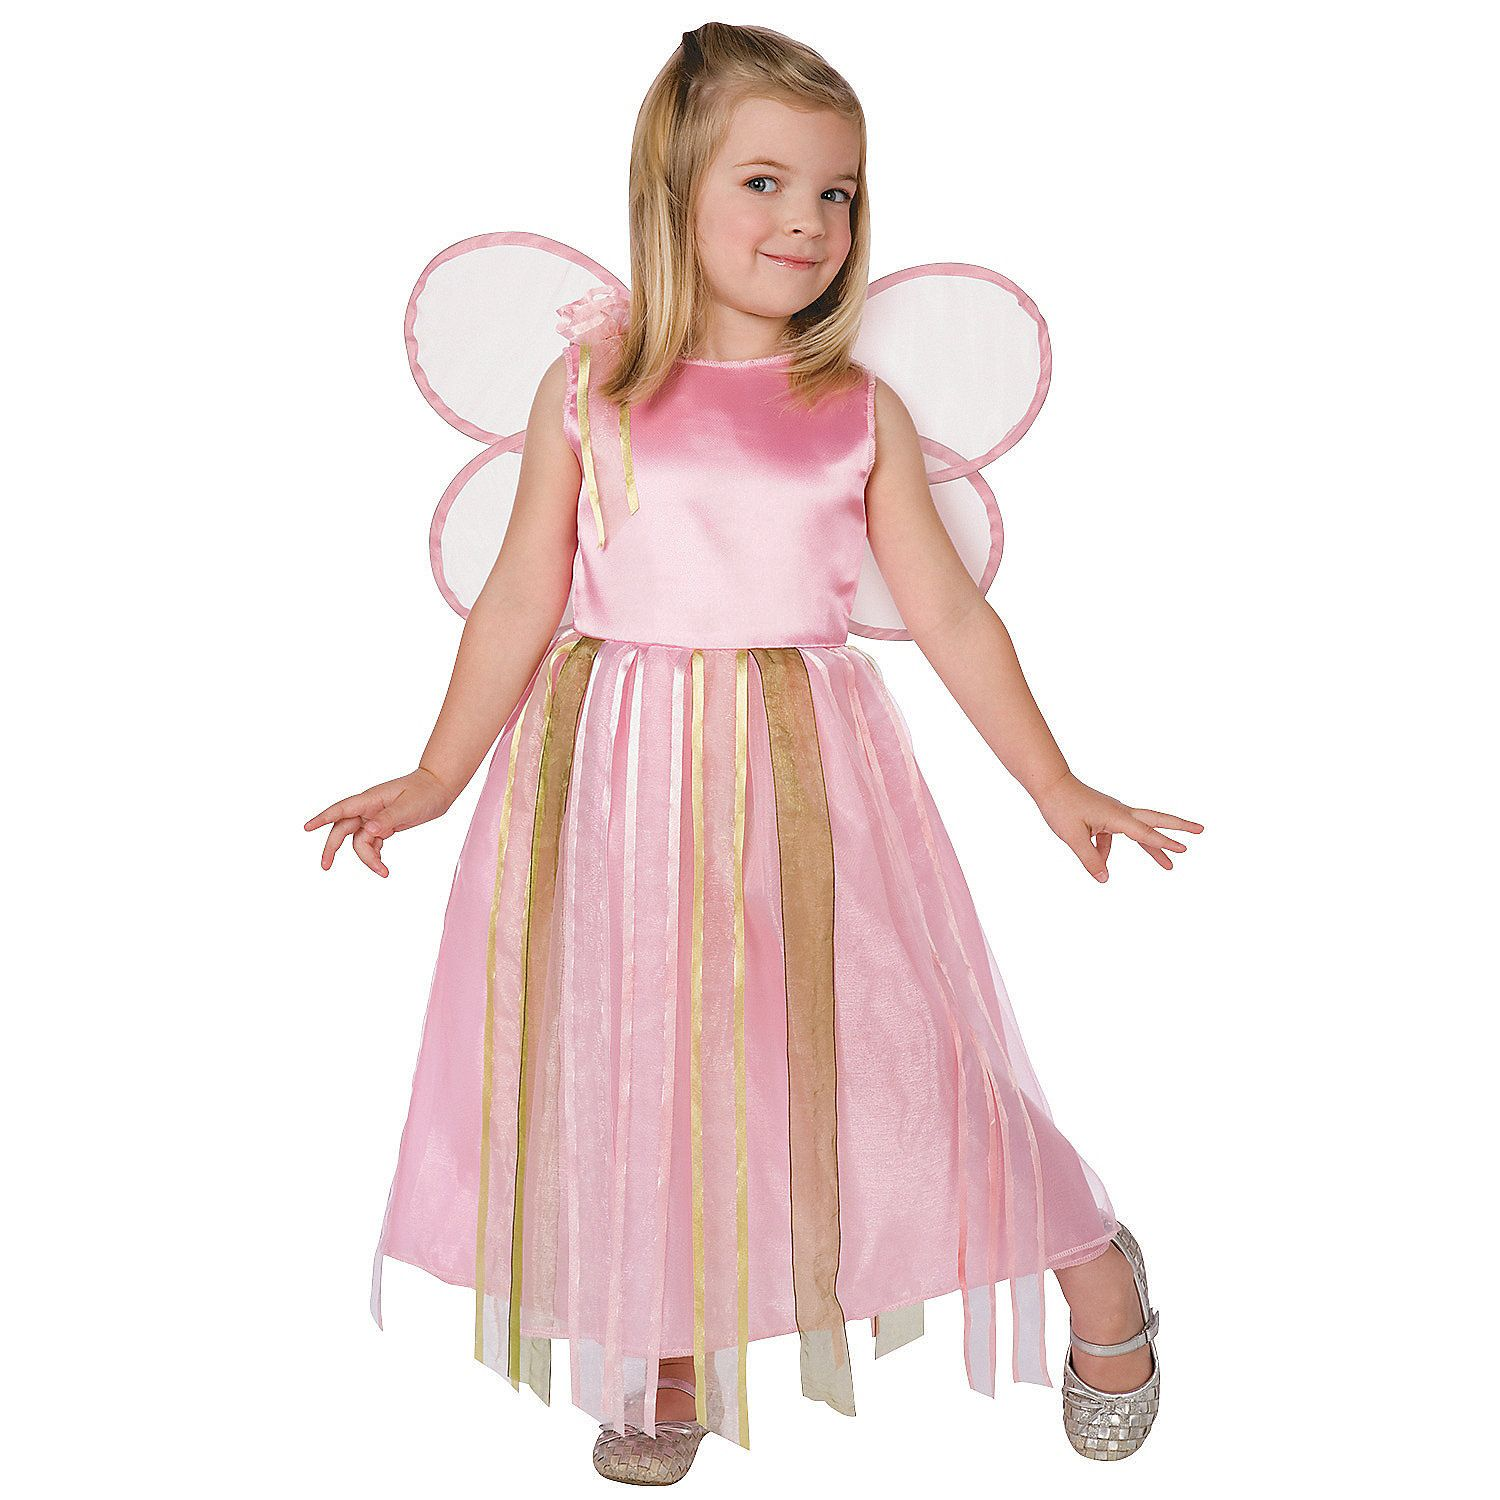 Girlu0027s Ribbon Fairy Costume - Ribbon Fairy Toddler Costume Valerie Tabor Smith Costume Includes Adorable and highly detailed ribbon dress and pink wings.  sc 1 st  Pinterest & Toddler Girlu0027s Ribbon Fairy Costume | Fairy halloween costumes ...